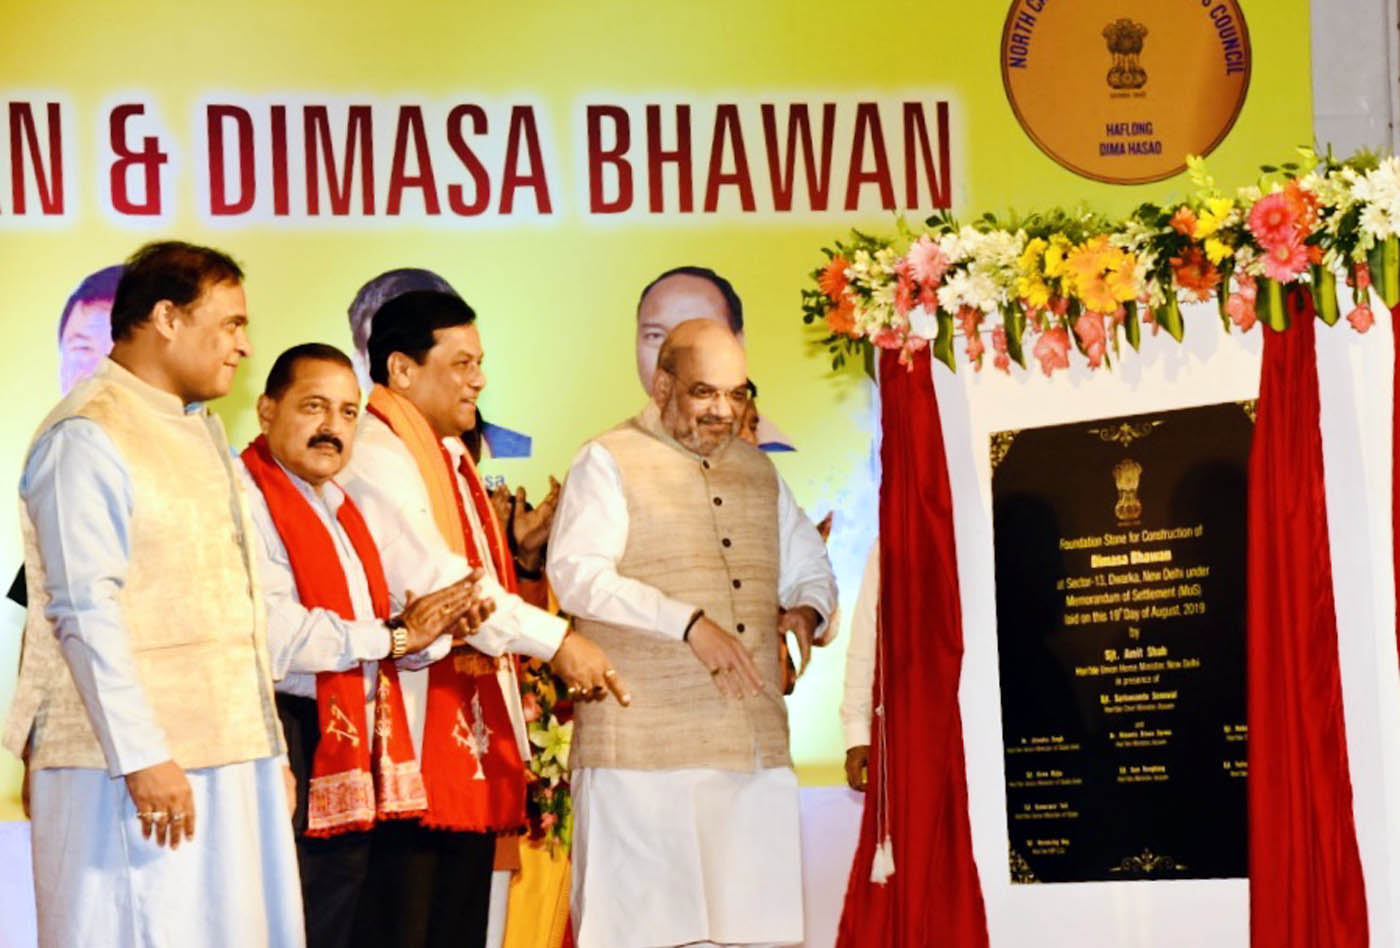 Union Home Minister Amit Shah, flanked by Union DoNER Minister Dr Jitendra Singh and Chief Minister of Assam Sarbananda Sonowal, laying the foundation stone of Northeast Karbi Bhawan and Dimasa Bhawan, at Dwarka, New Delhi on Monday.